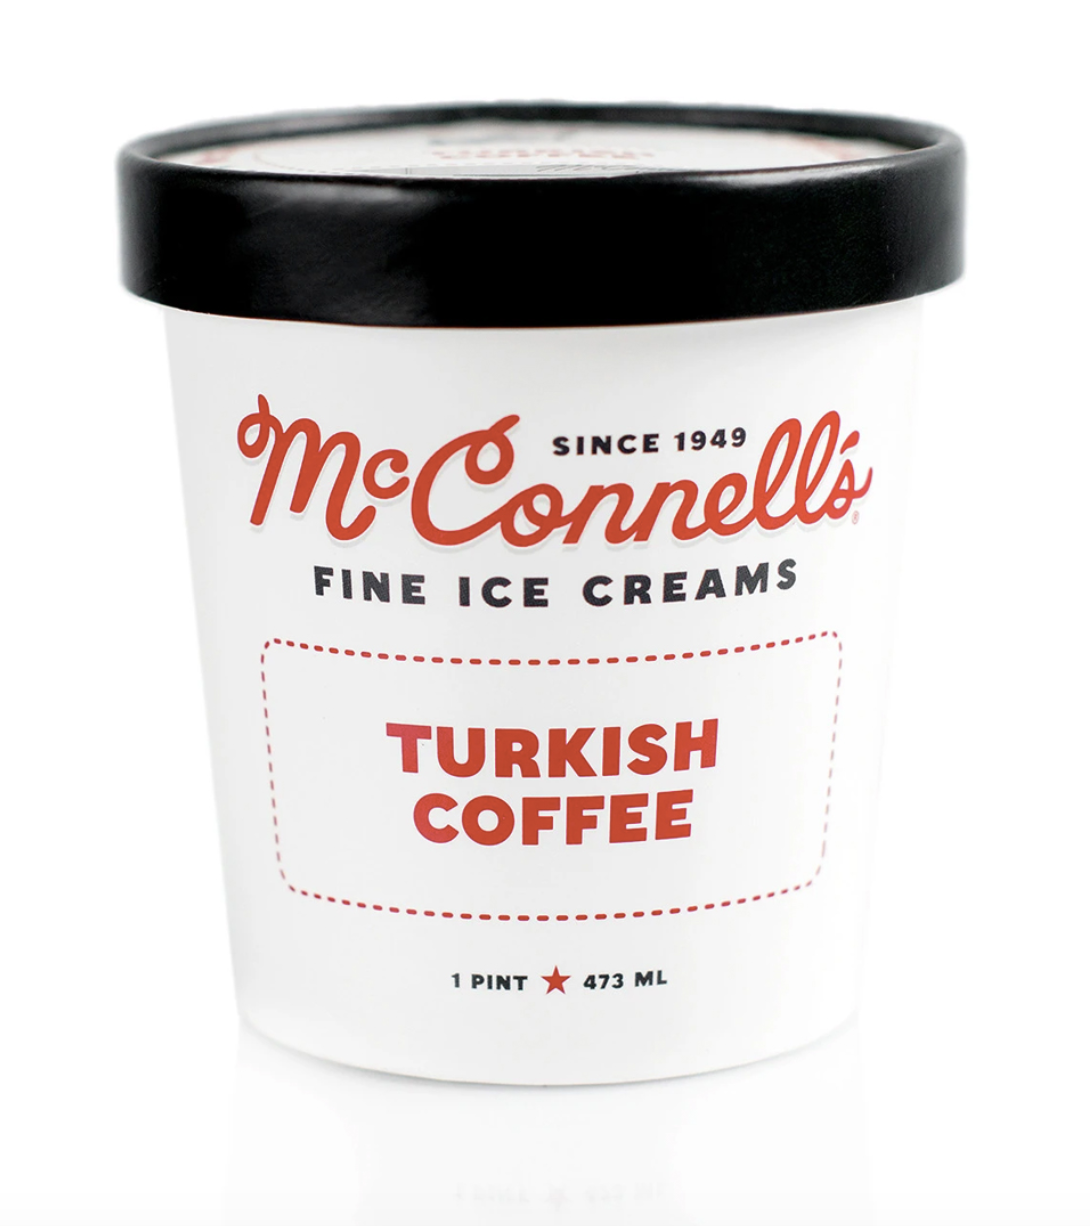 cconnells ice cream